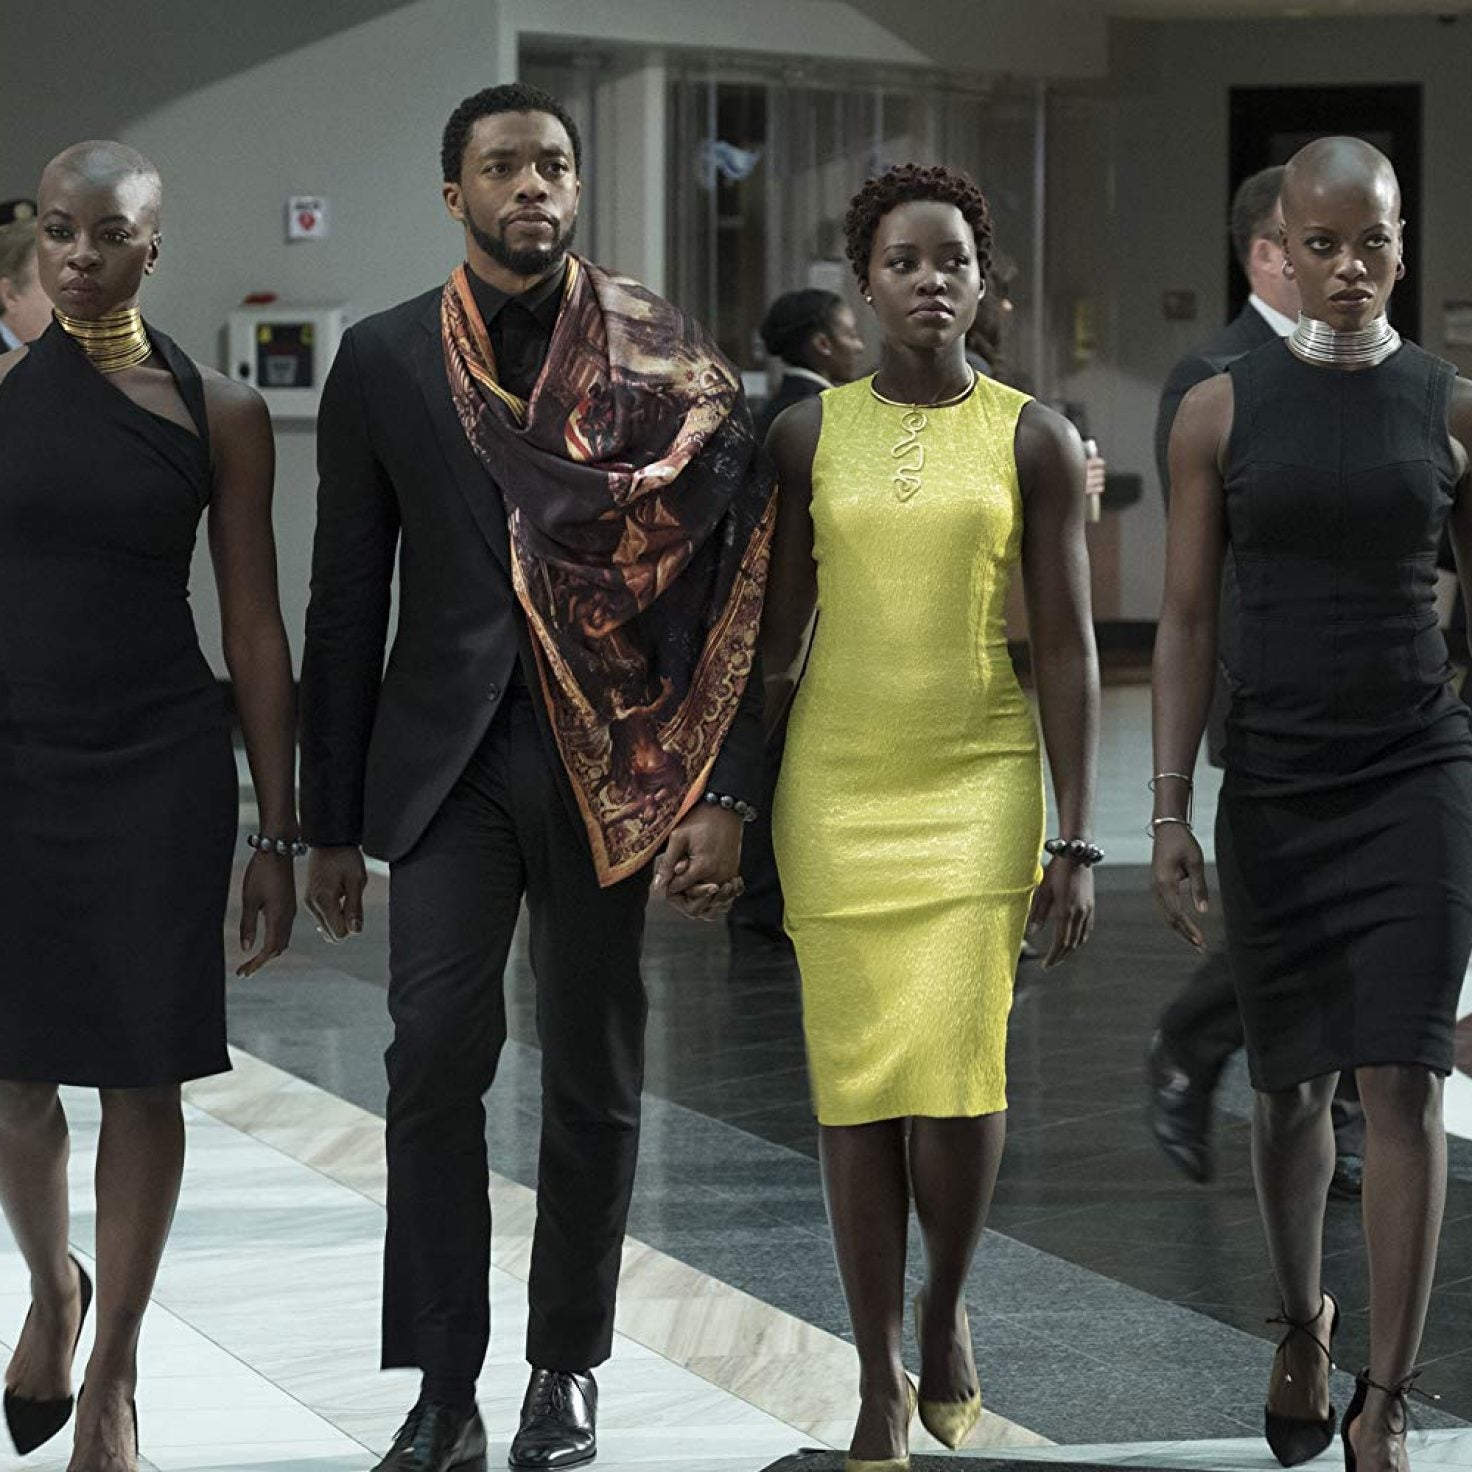 The 20 Best Black Films Of The Last Decade